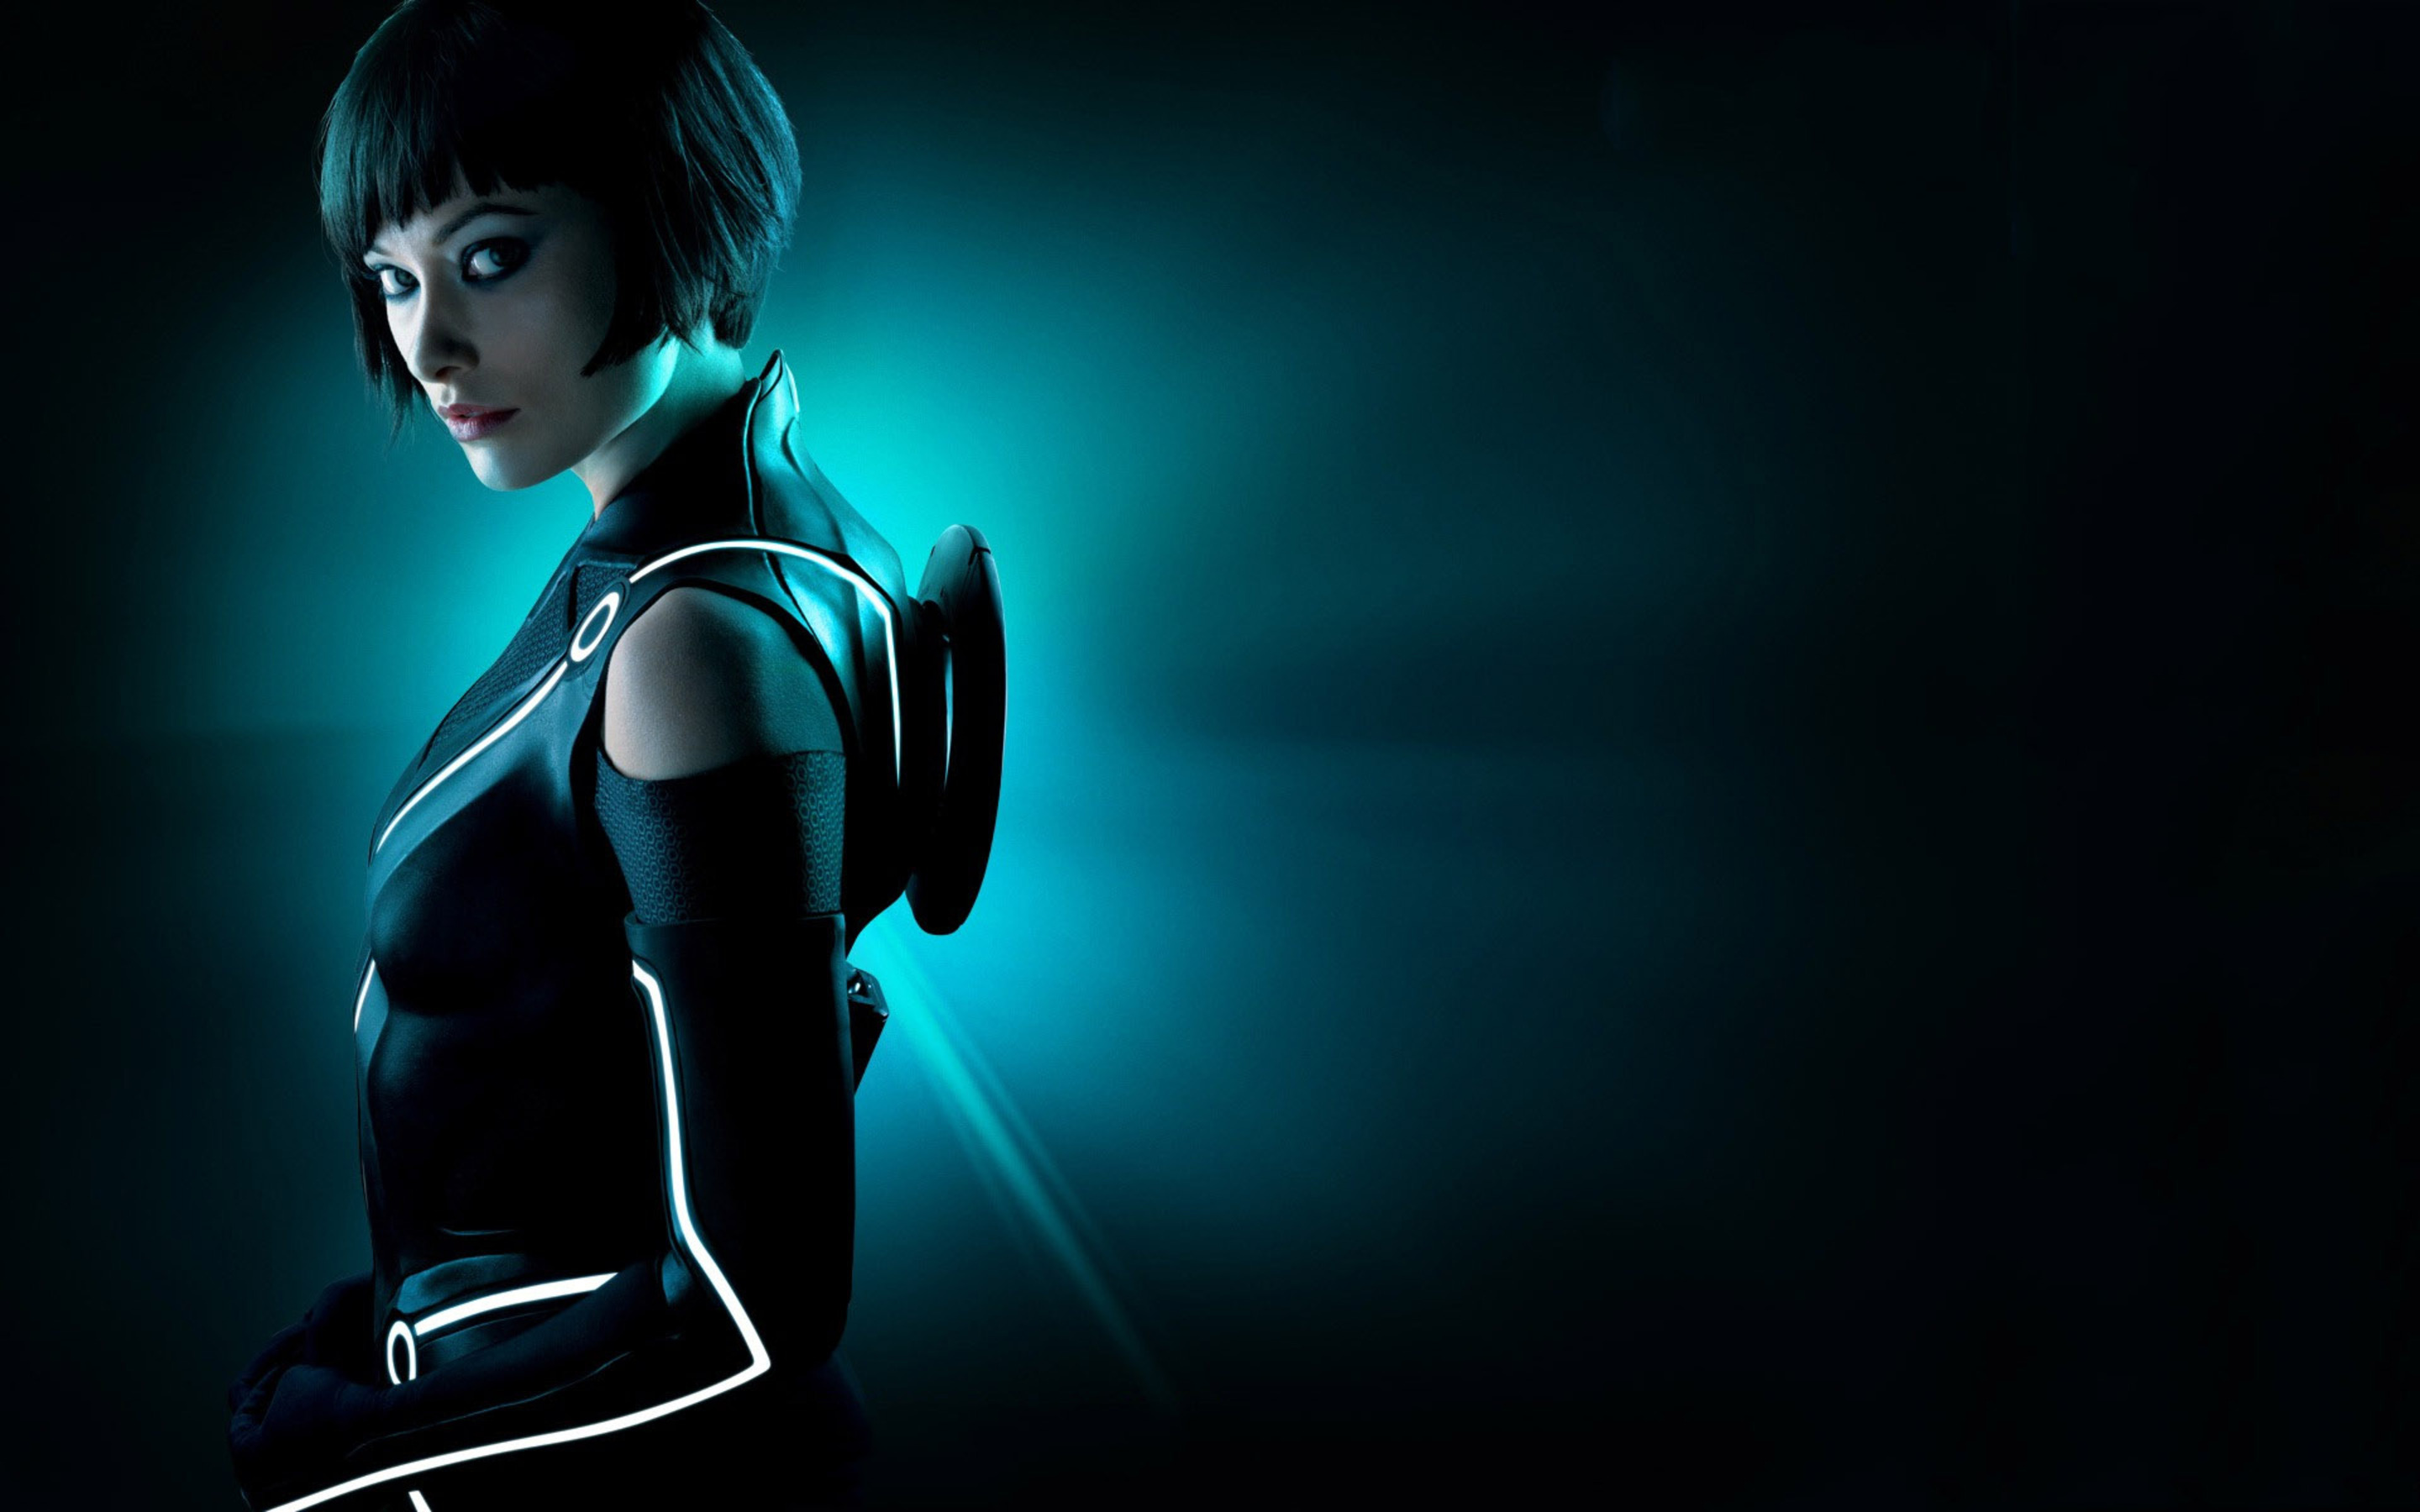 2880x1800 tron legacy movie macbook pro retina hd 4k wallpapers